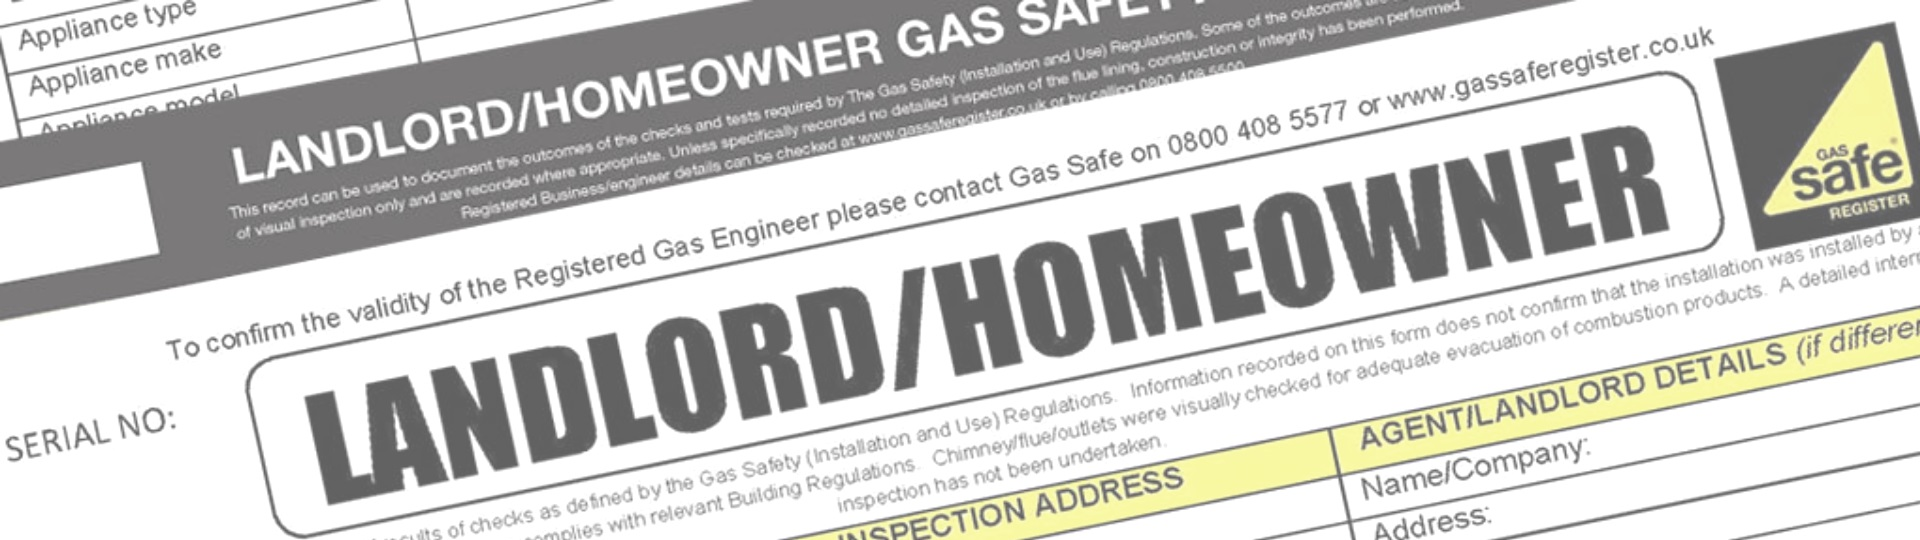 Gas Saftey Certificates Lockleaze